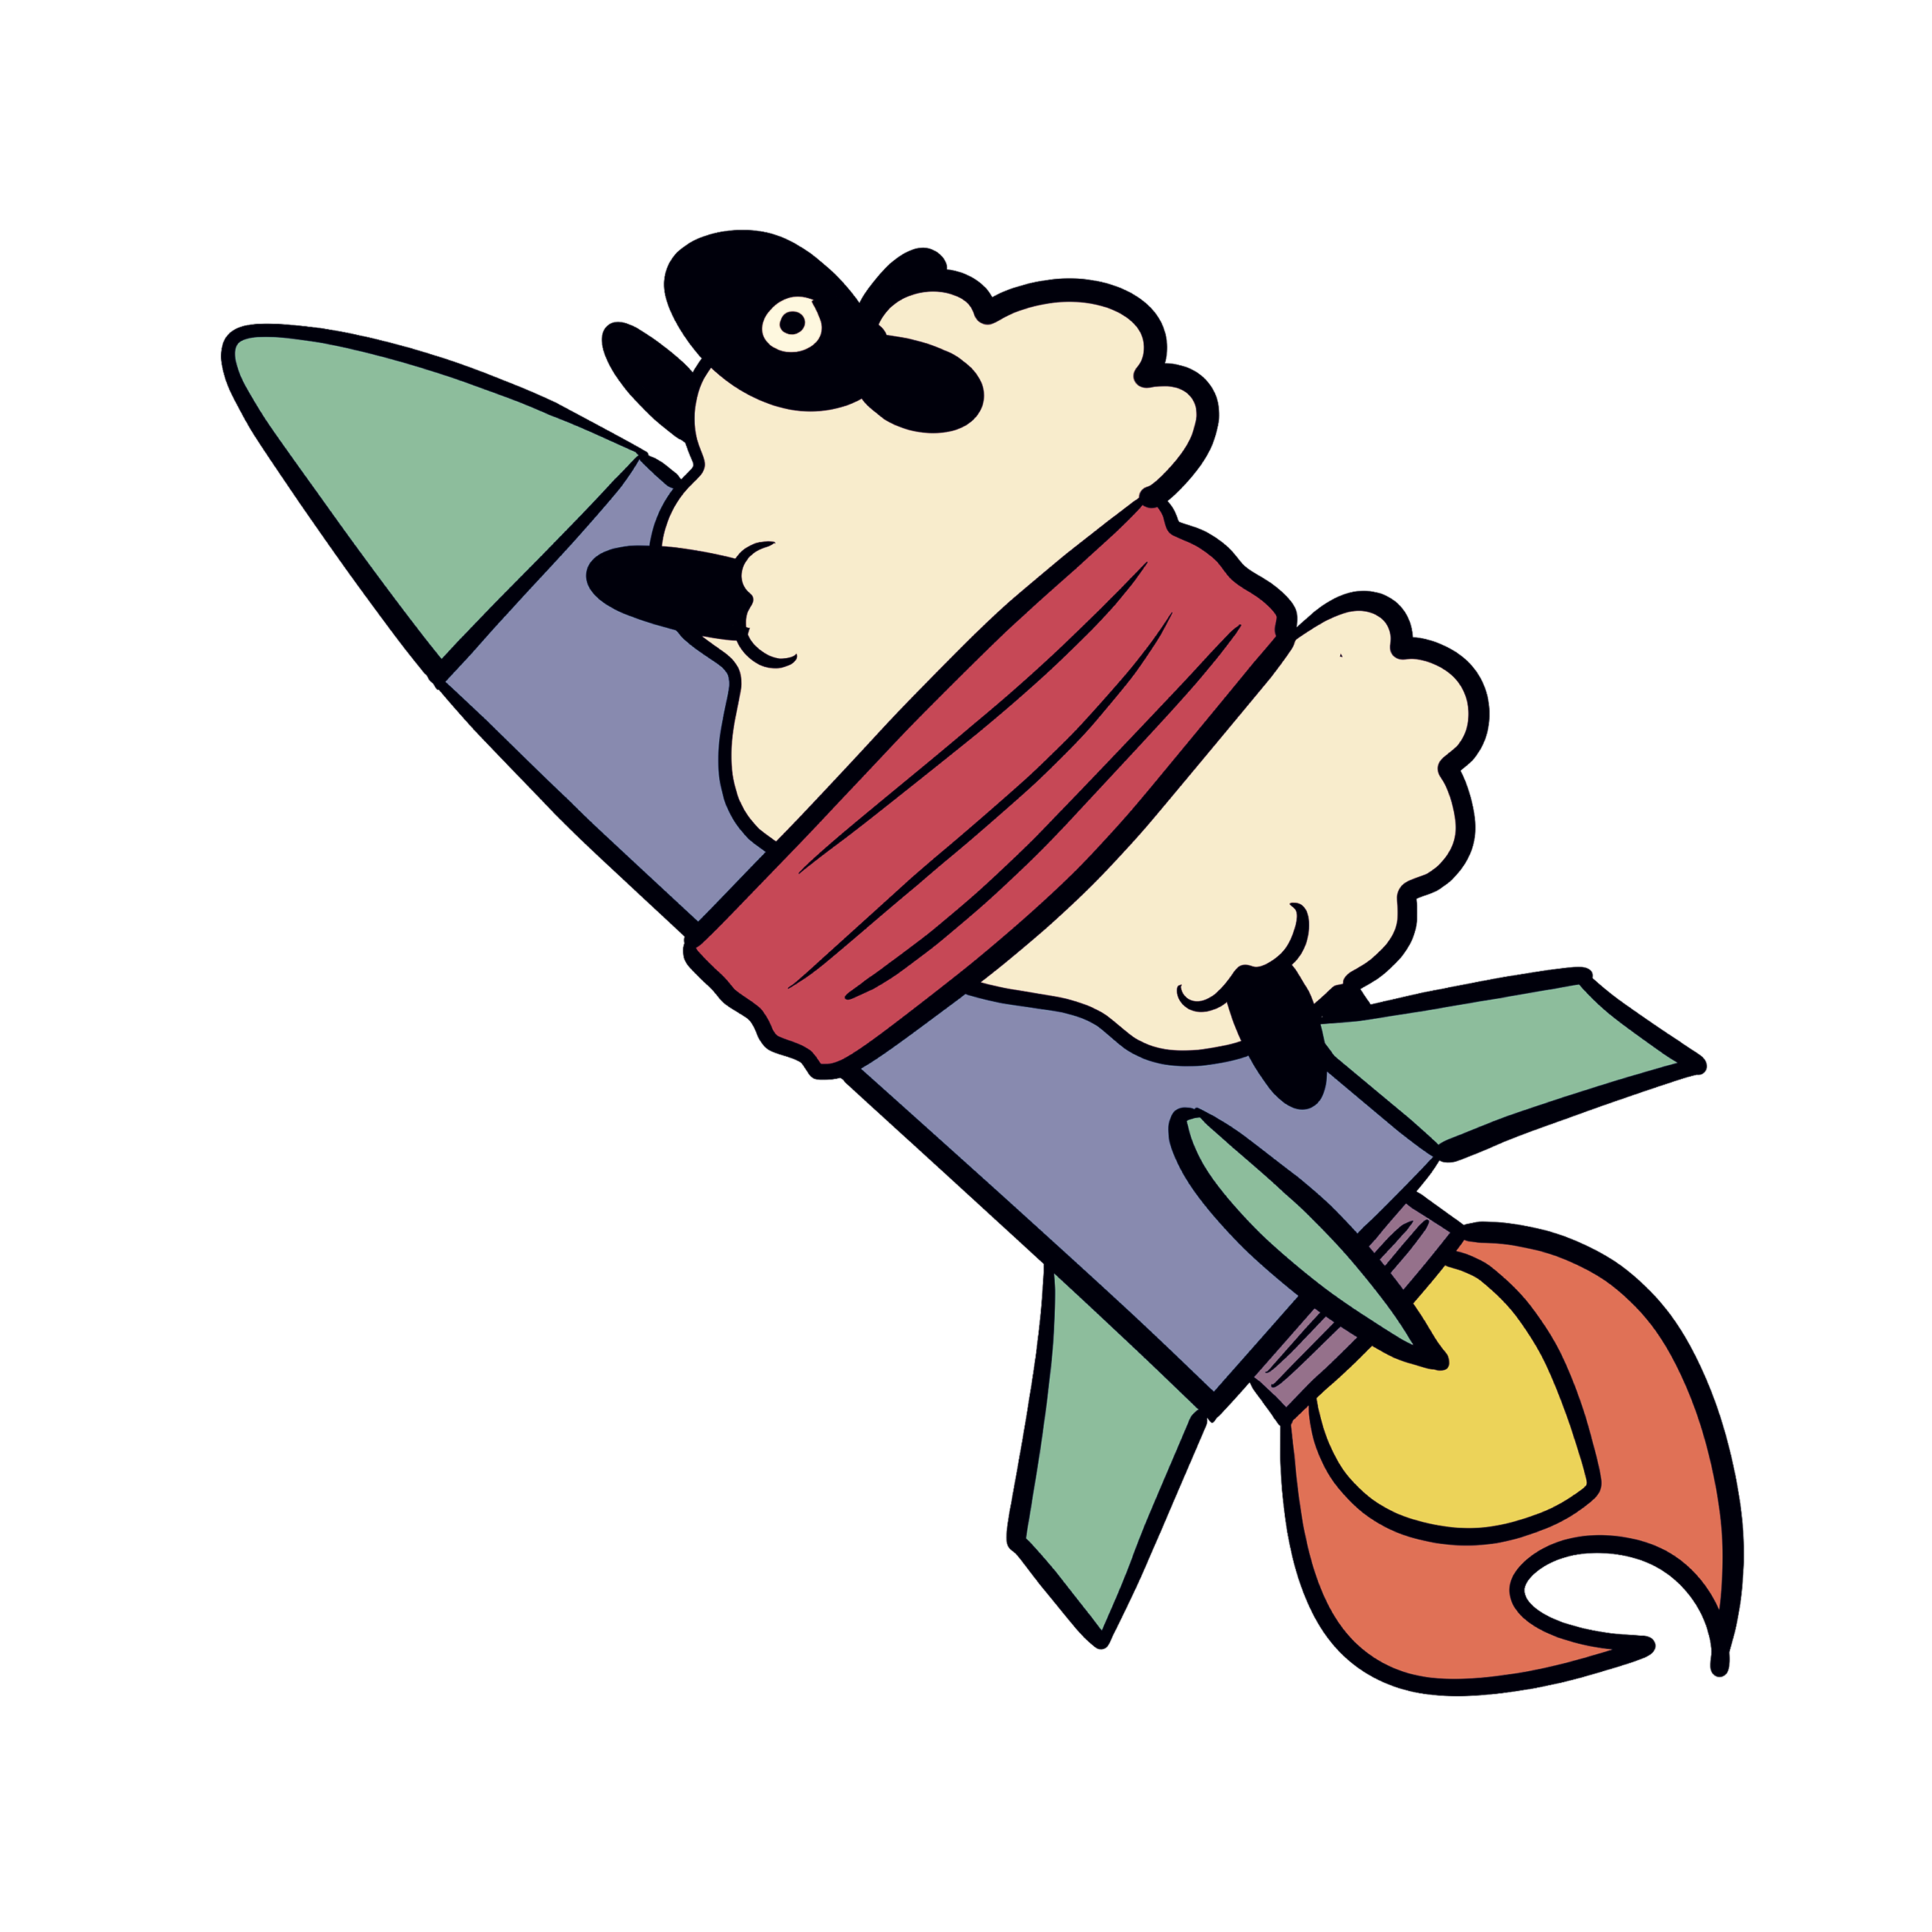 Go Go Mach Rocket Sheep